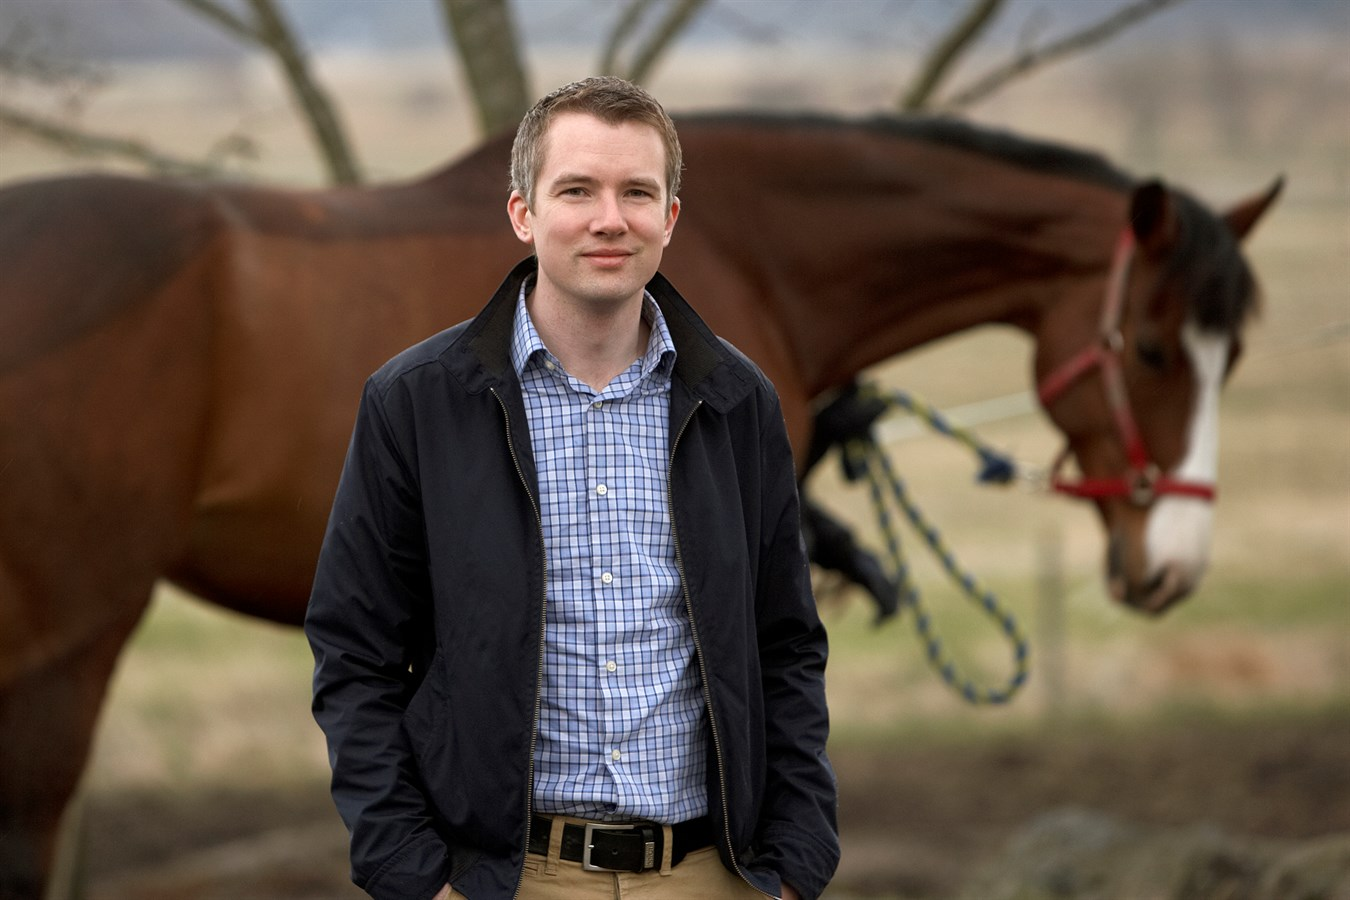 Andreas Eidehall, Active Safety expert at Volvo Car Corporation